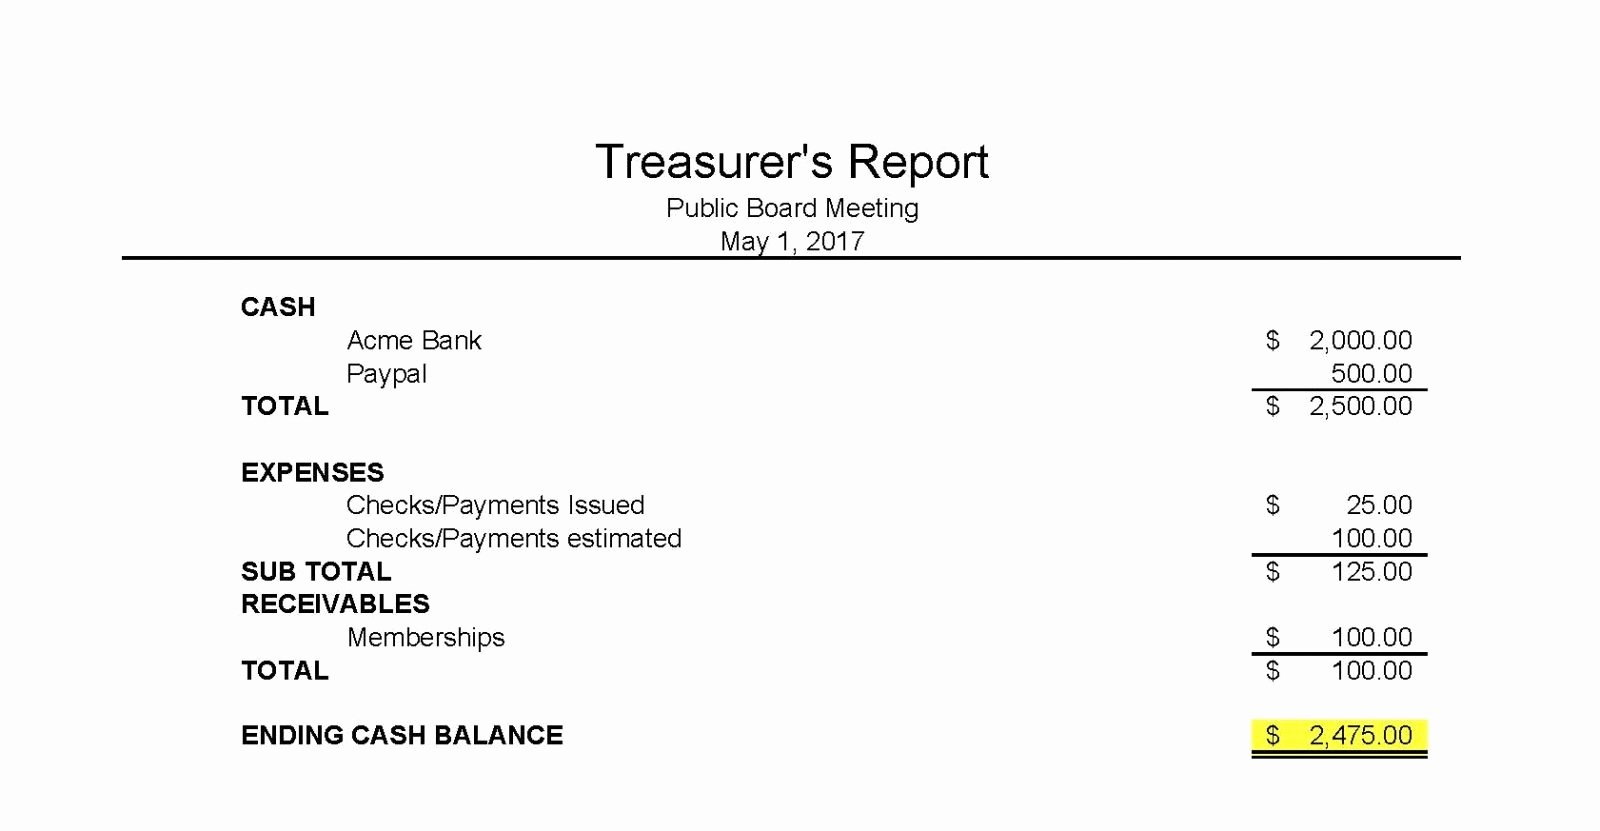 Treasurer Report Template Excel Luxury Treasurers Report Templateasurer Essential Print S Maggi